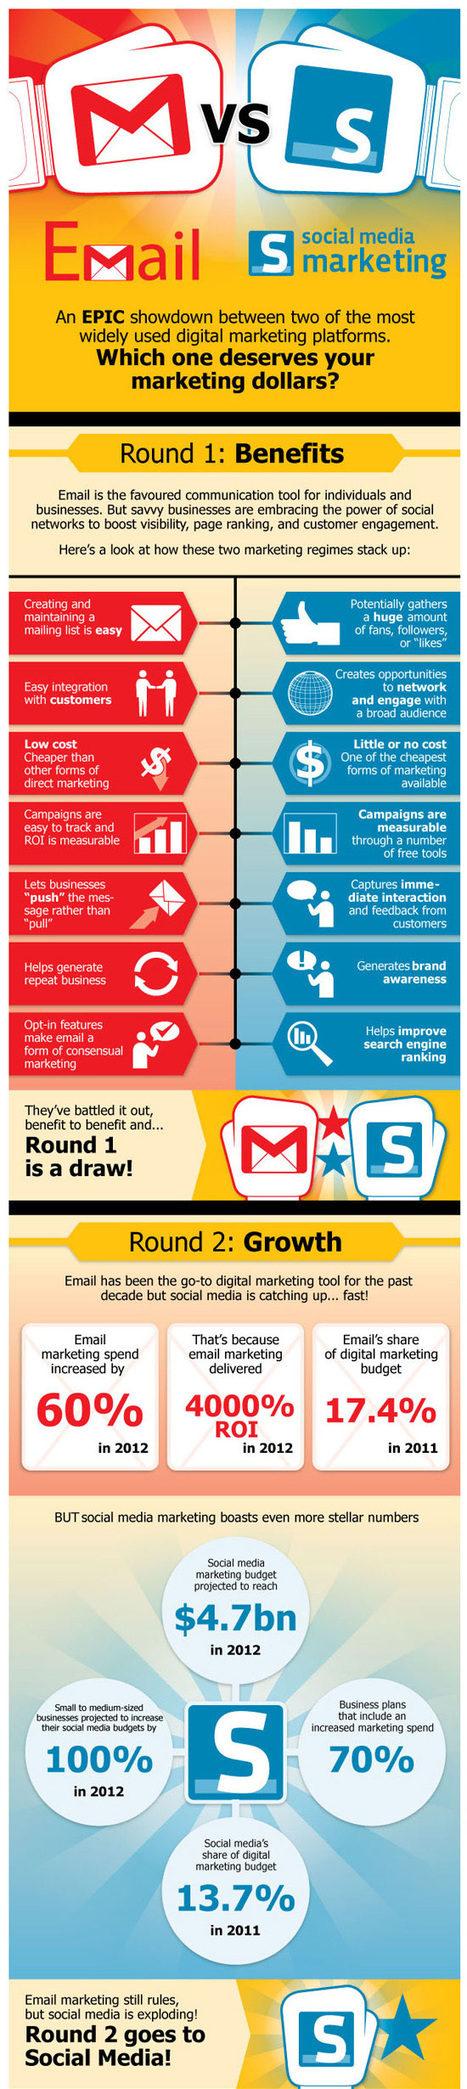 E-Mail Vs. Social Media Marketing | Infographic | SOCIAL MEDIA MARKETING TIPS | Scoop.it